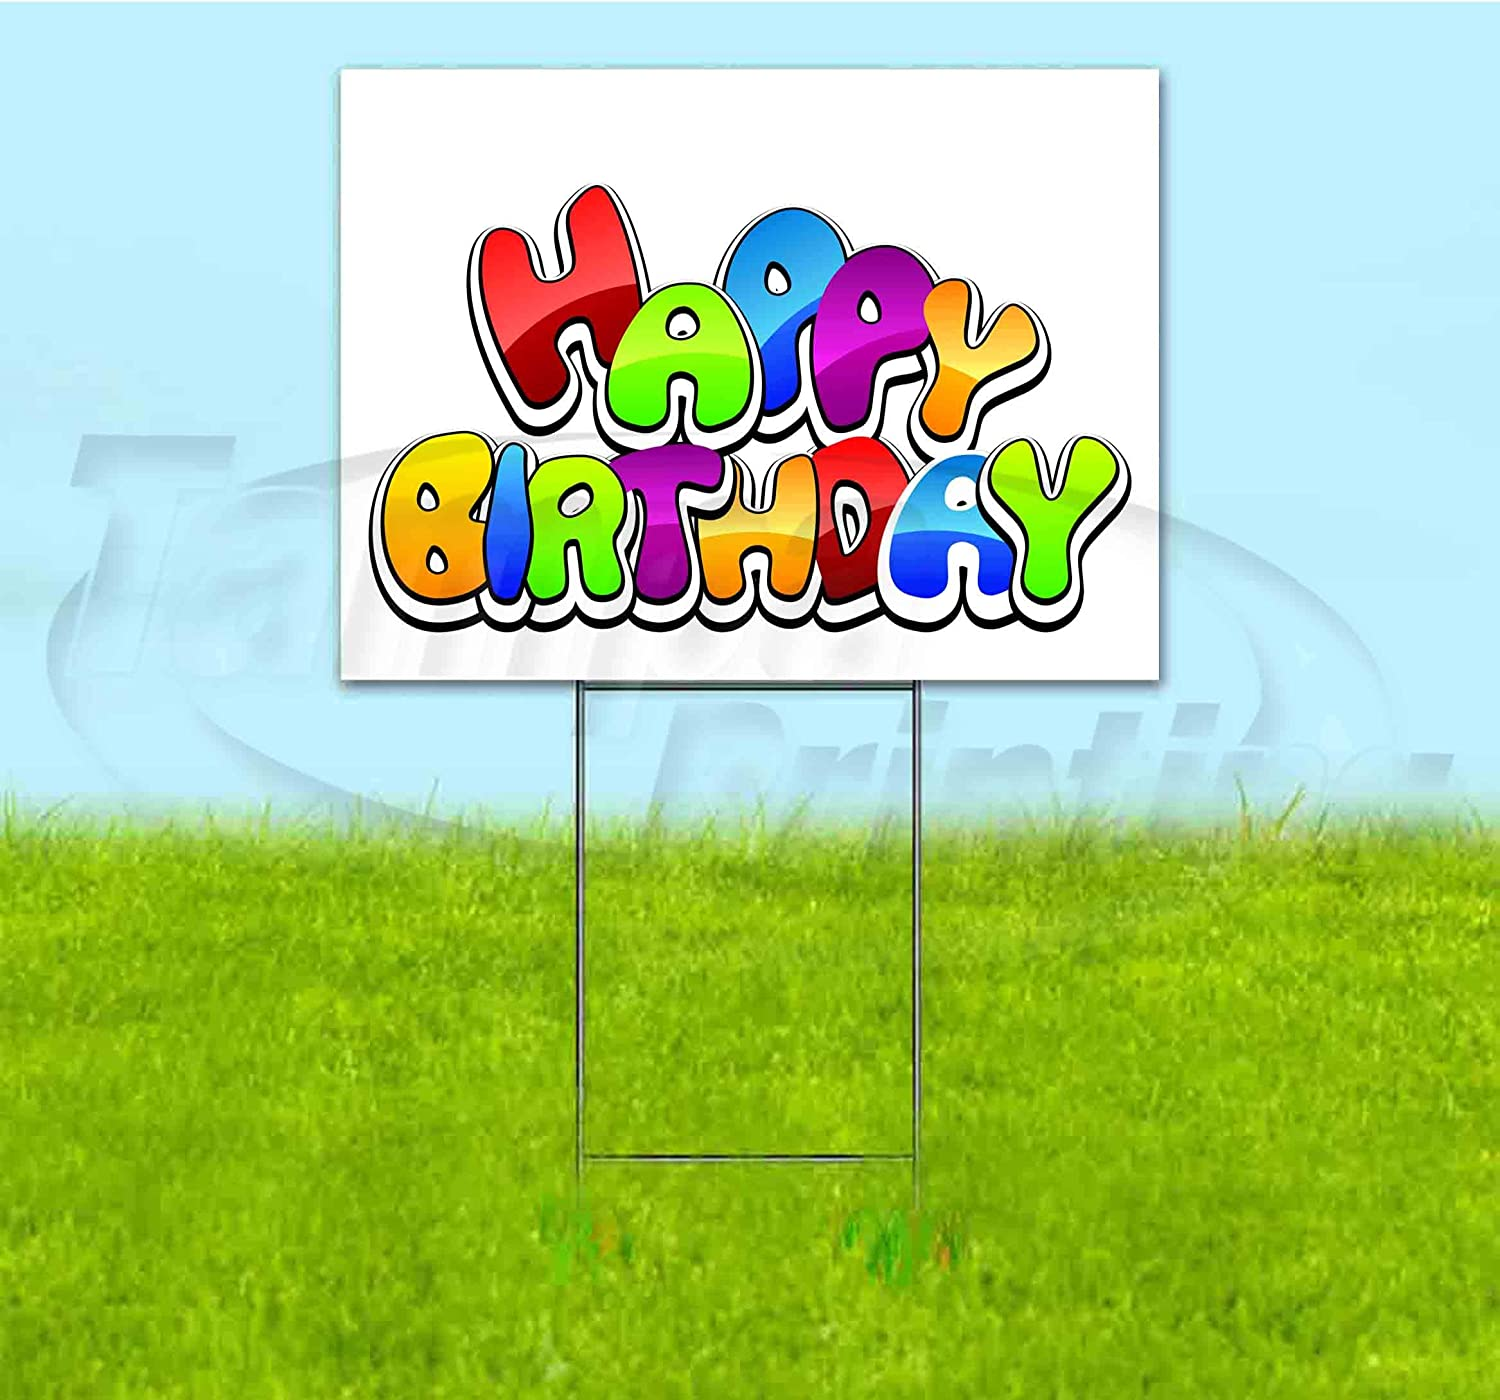 Happy 70% Dealing full price reduction OFF Outlet Birthday 18